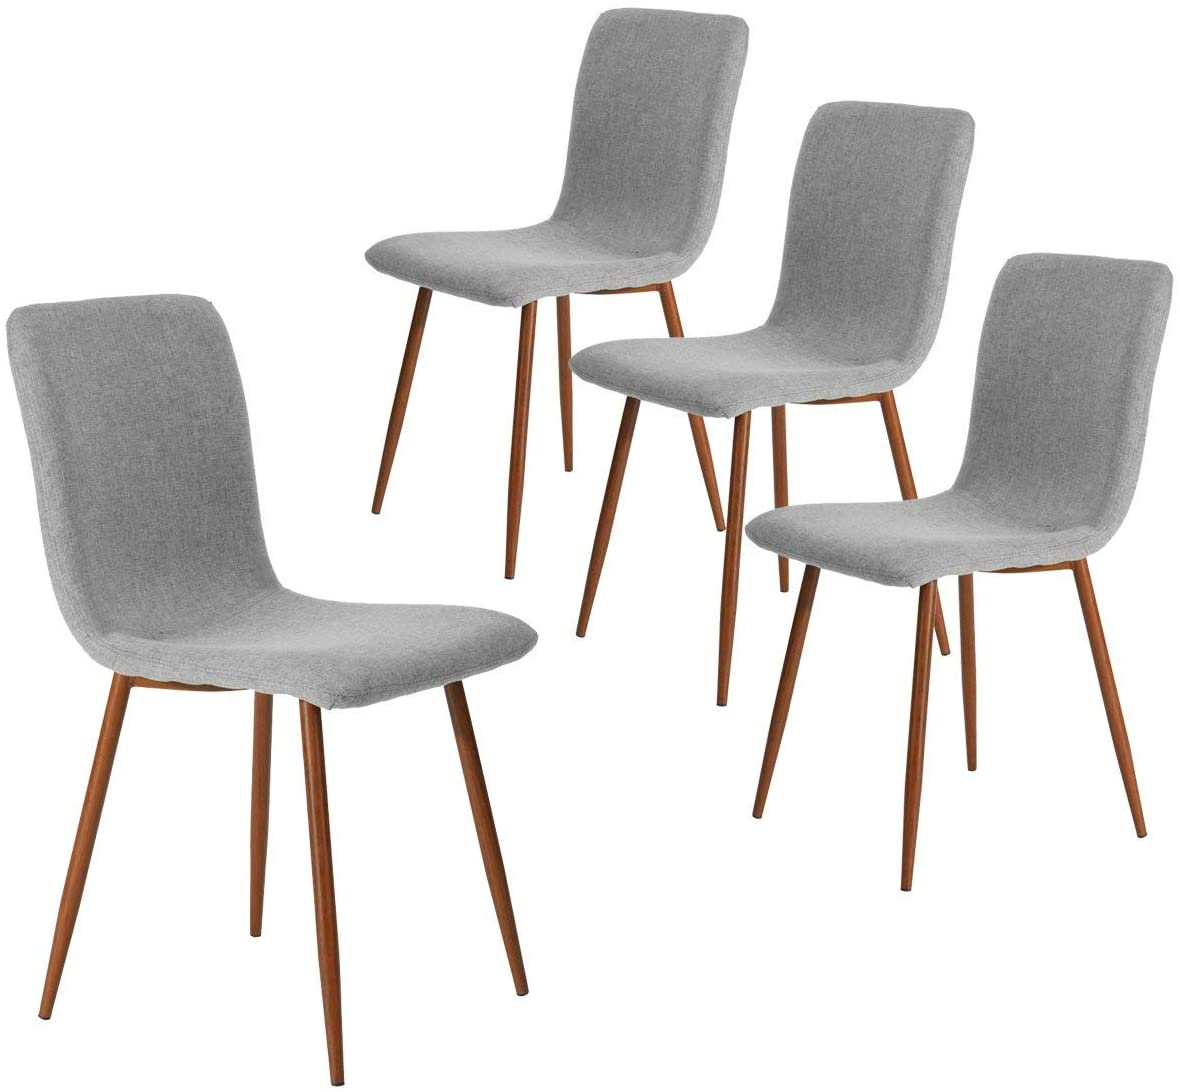 Amazon Com Dining Chairs Kitchen Chairs Set Of 4 Modern Dining Room Side Chairs With Fabric Cushion Seat Back Mid Century Living Room Chairs With Brown Metal Legs Gray Kitchen Dining